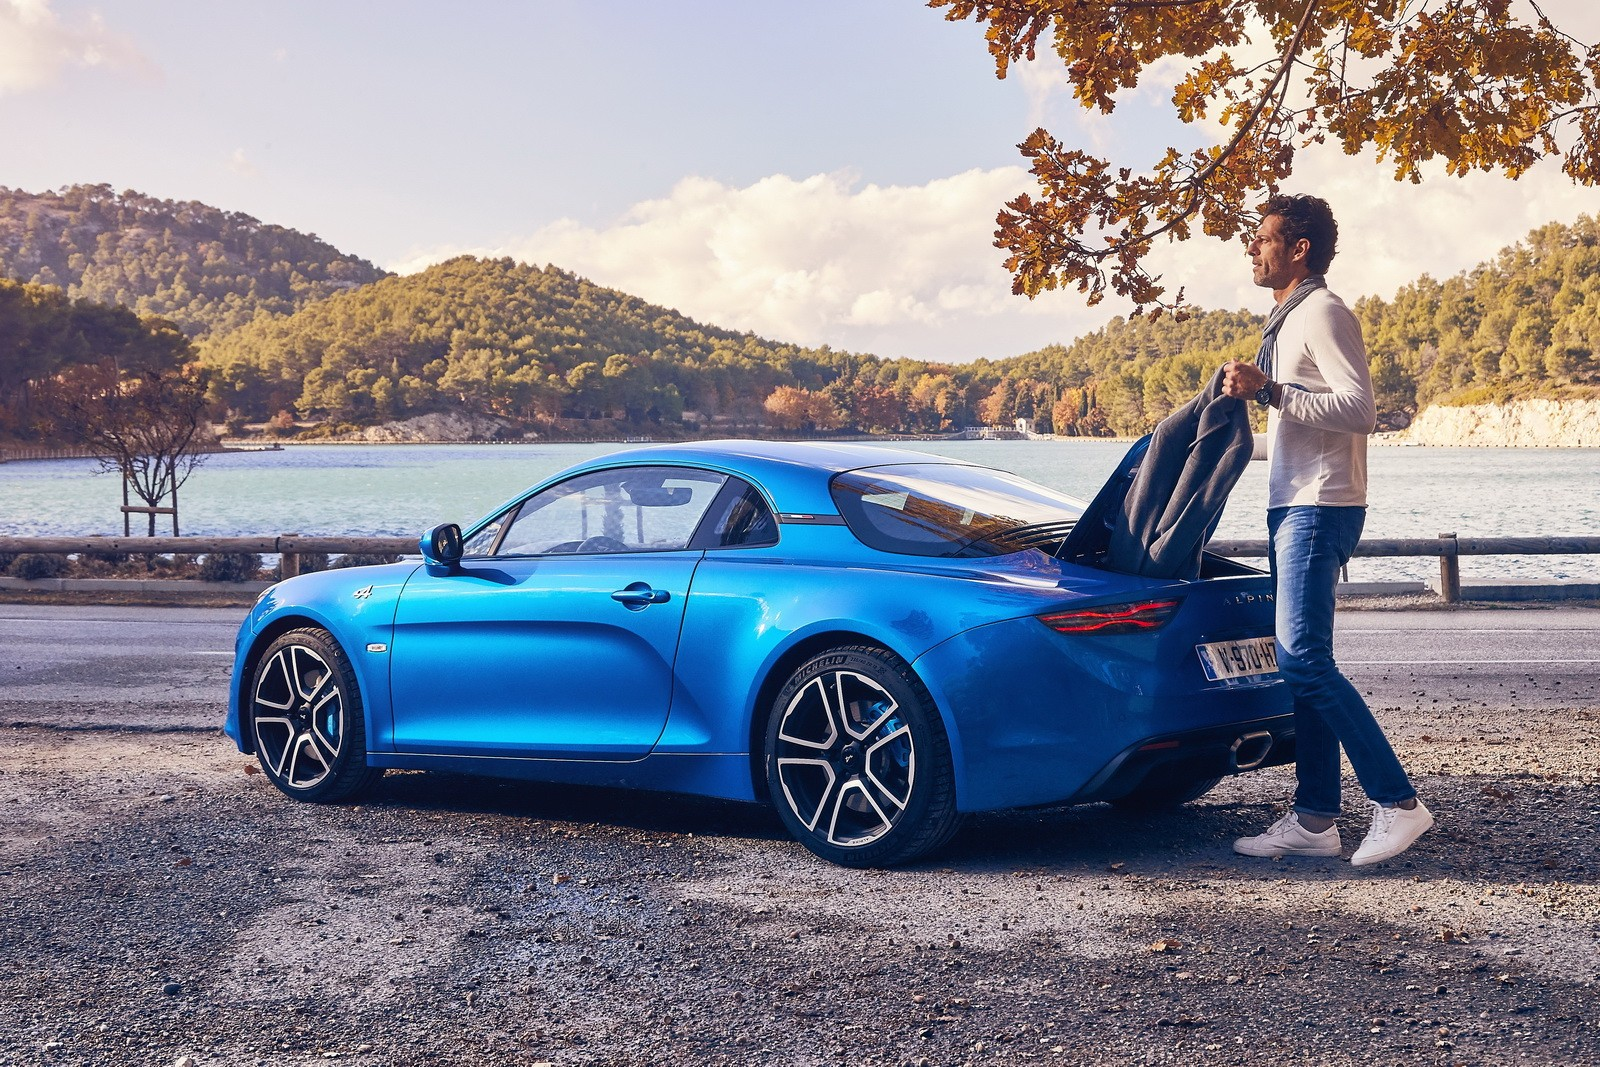 Alpine A110 Is An Exclusive French Sports Car In New